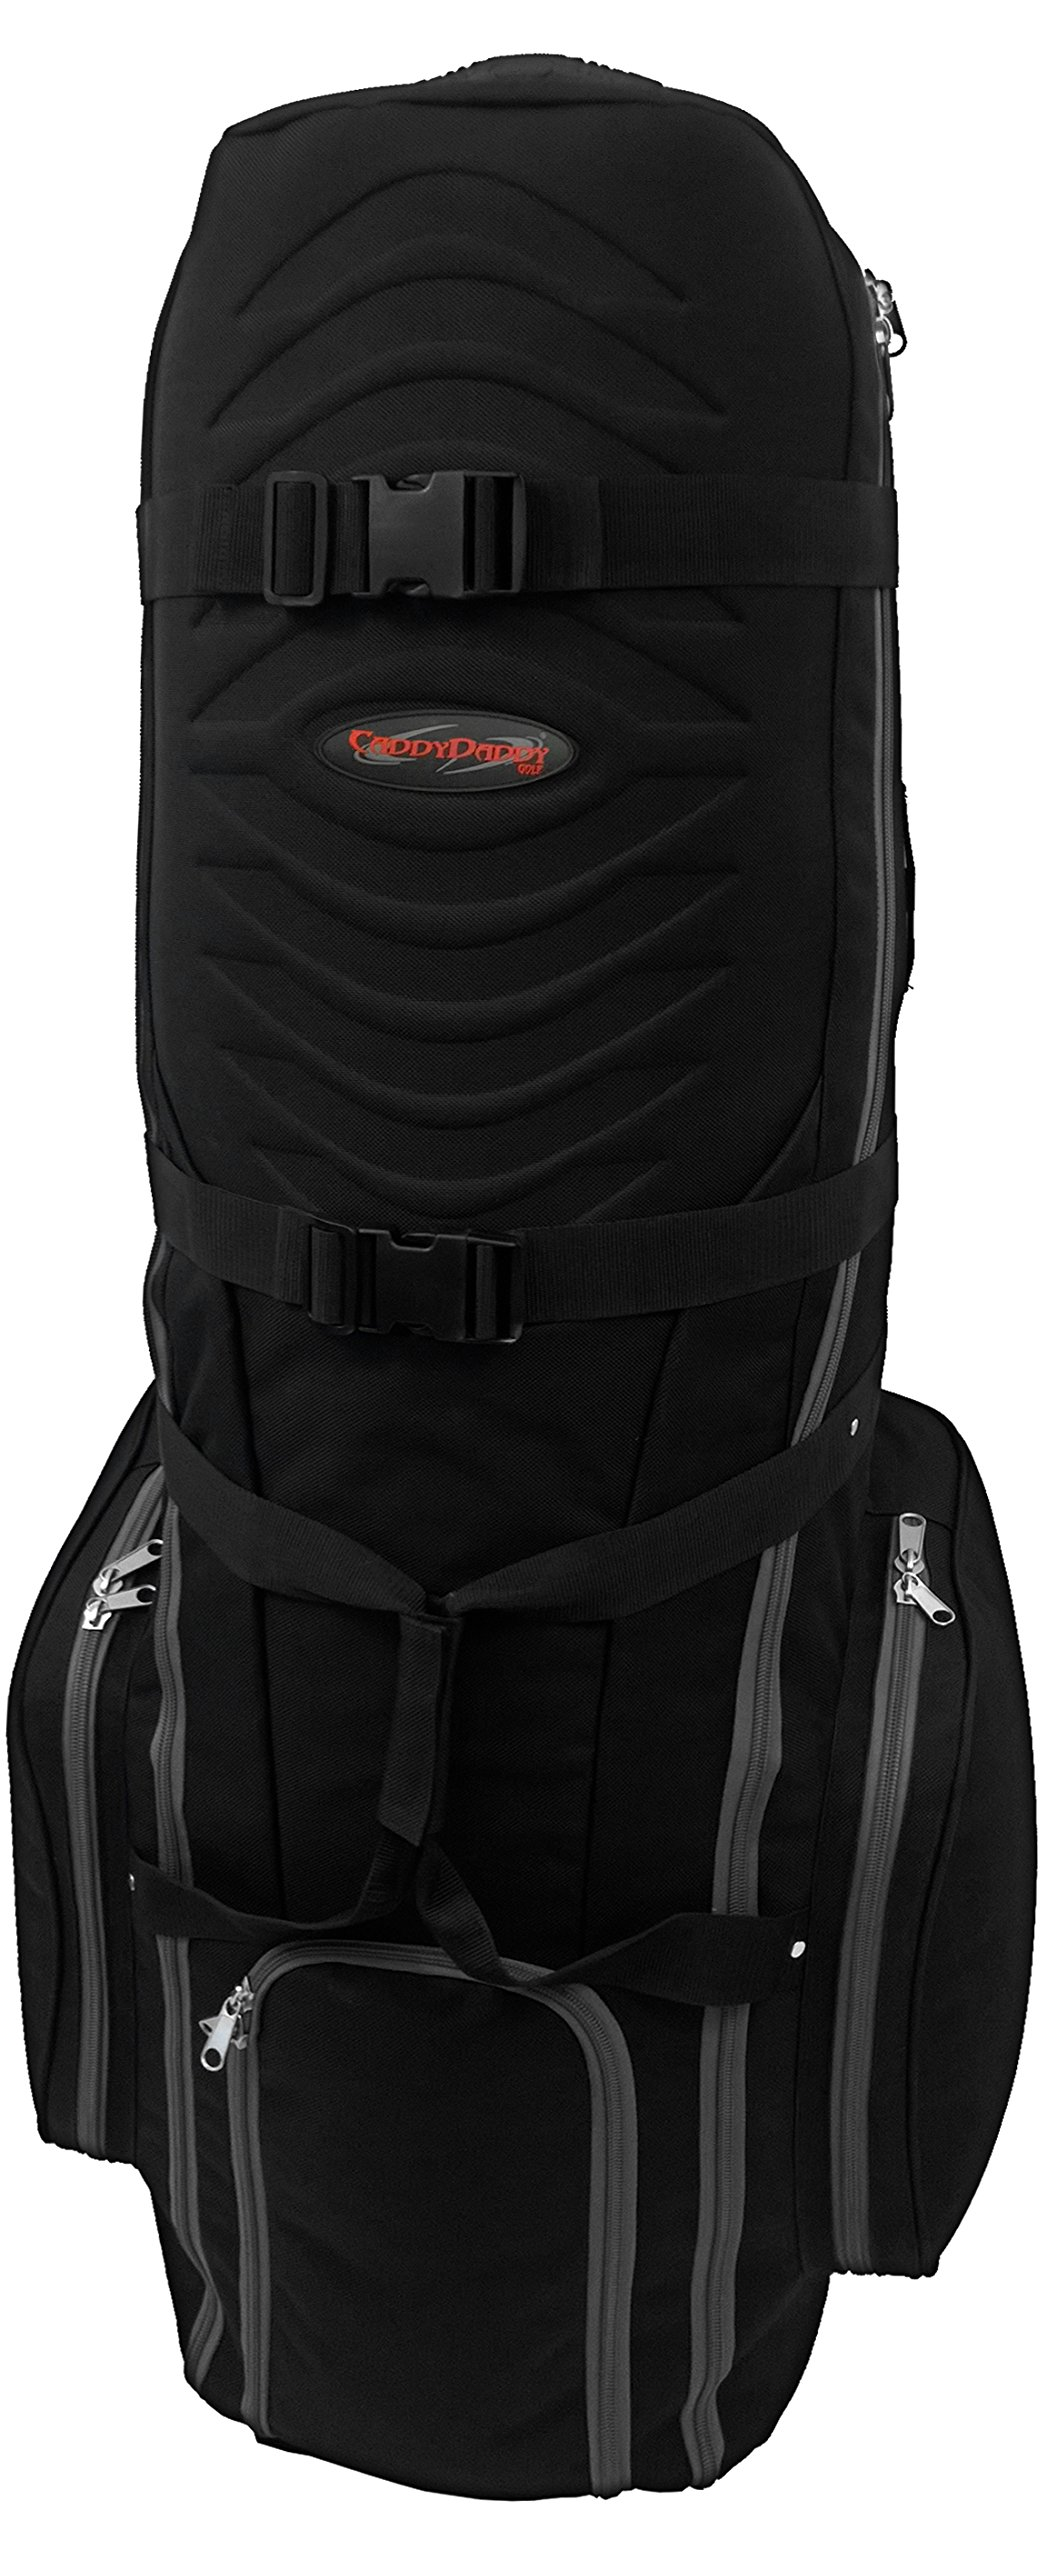 Caddy Daddy Golf Phoenix Golf Travel Bag, Black by Caddy Daddy